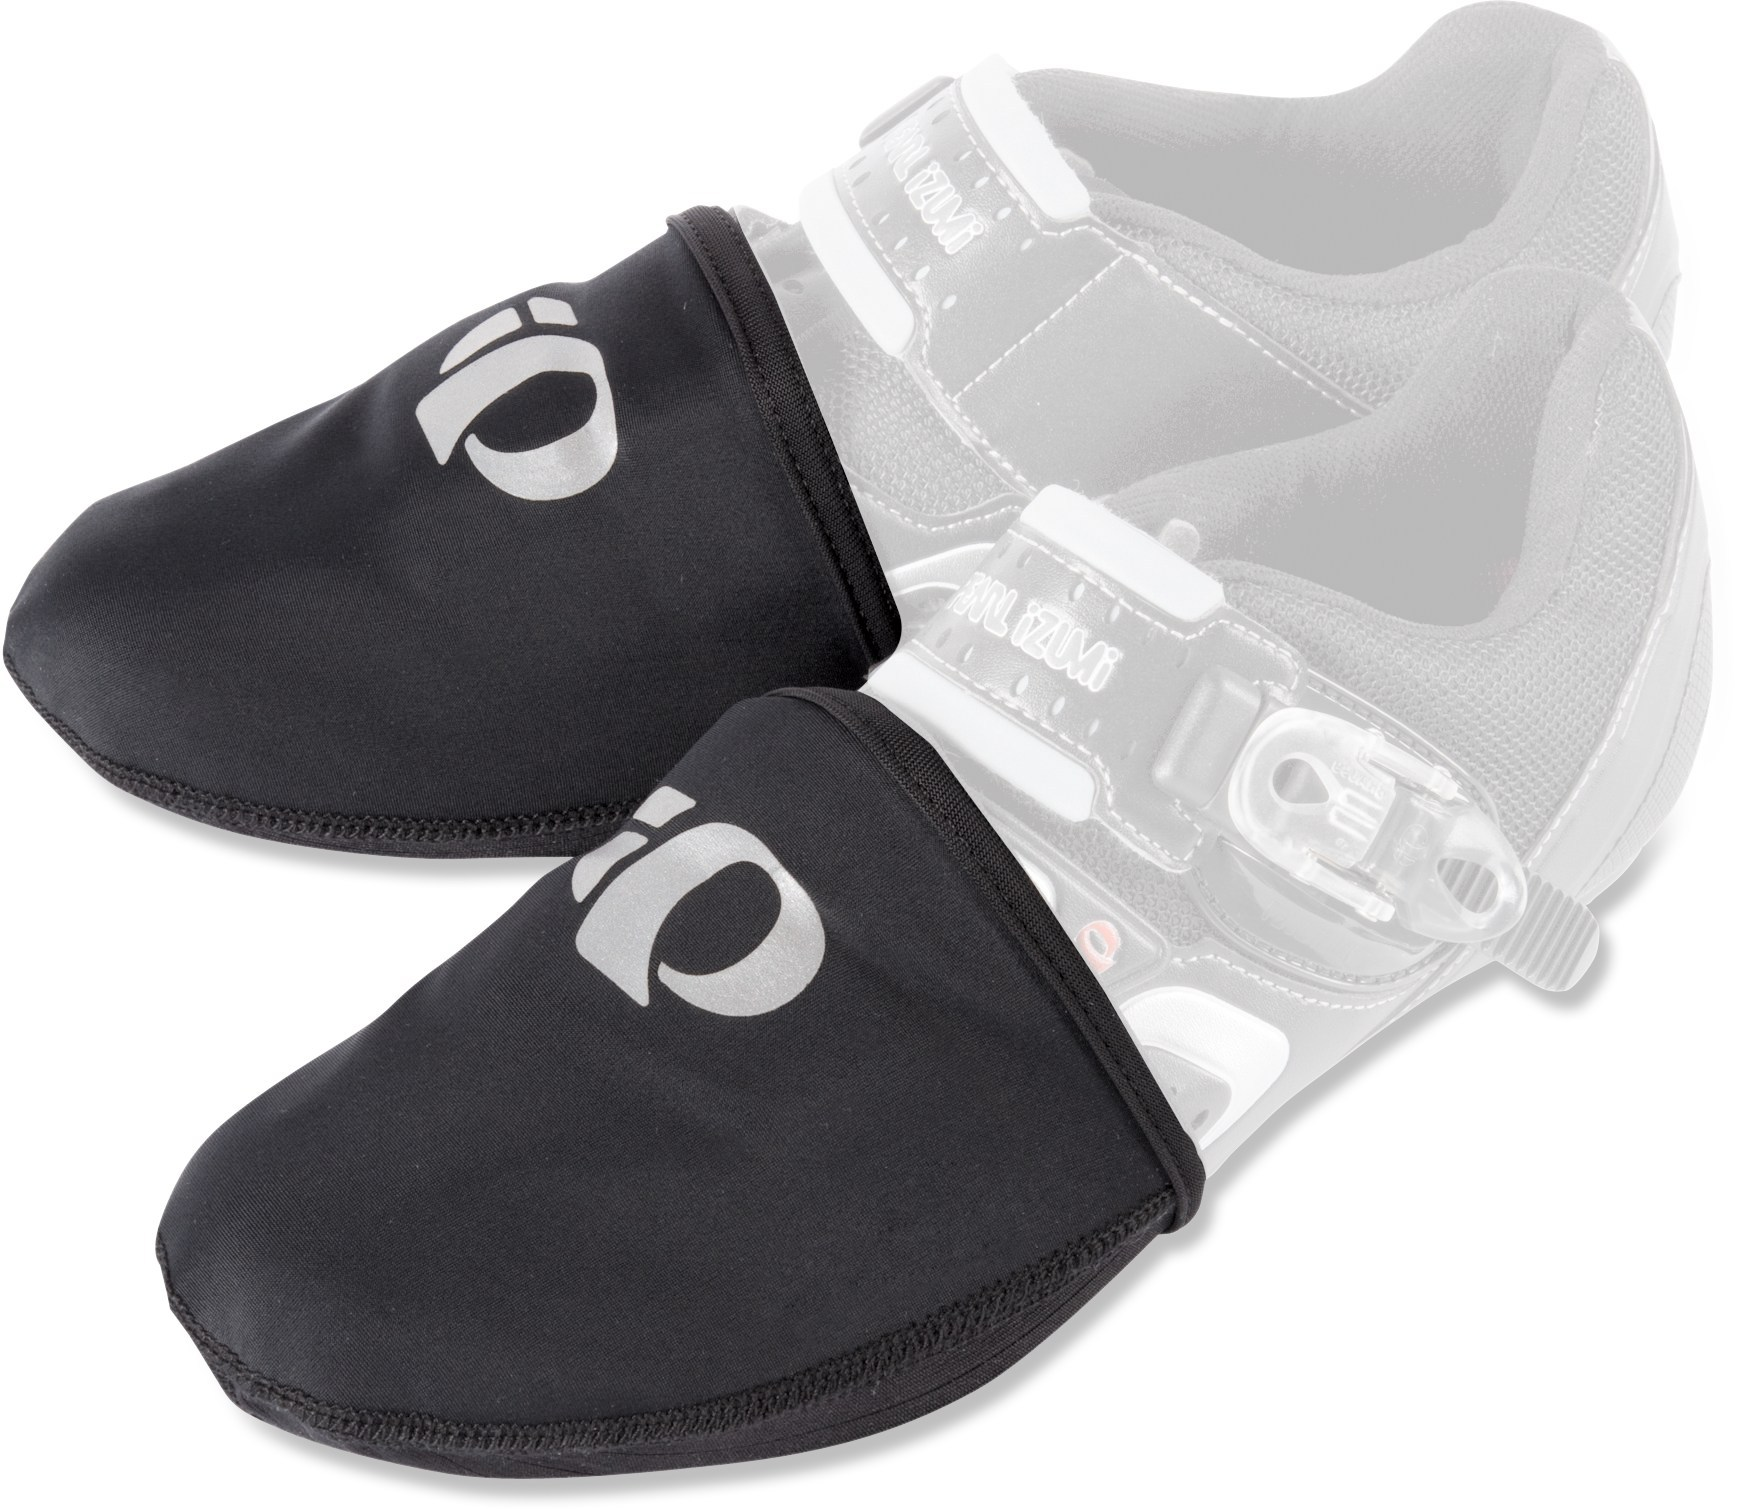 PEARL iZUMi Elite Thermal Bike Shoe Toe Covers